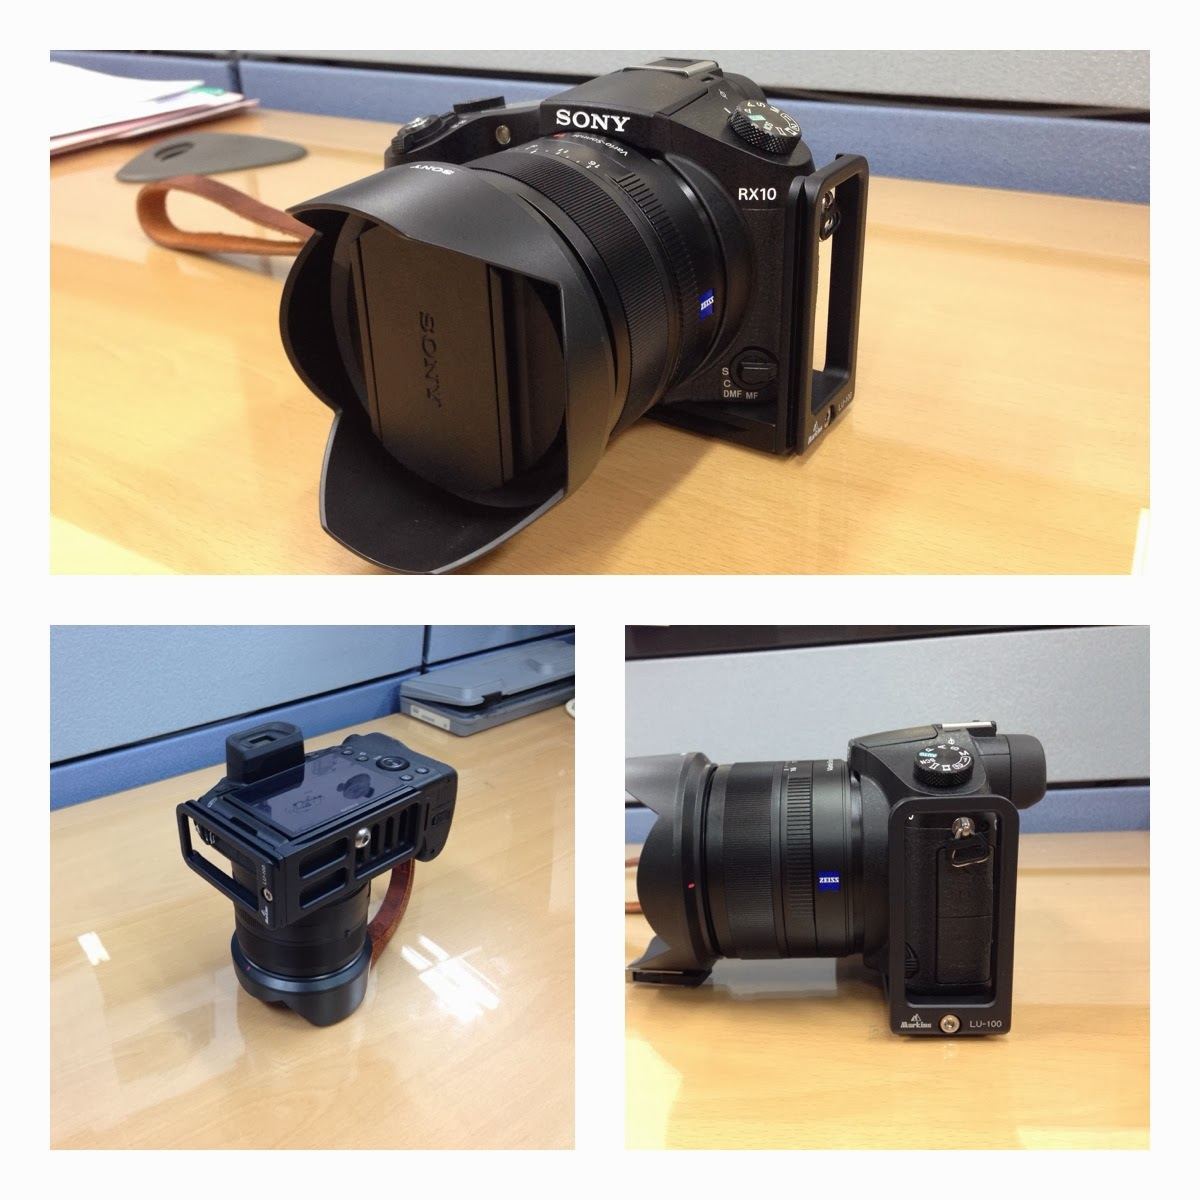 chance to put the markins lu 100 l plate on a new sony rx 10 camera